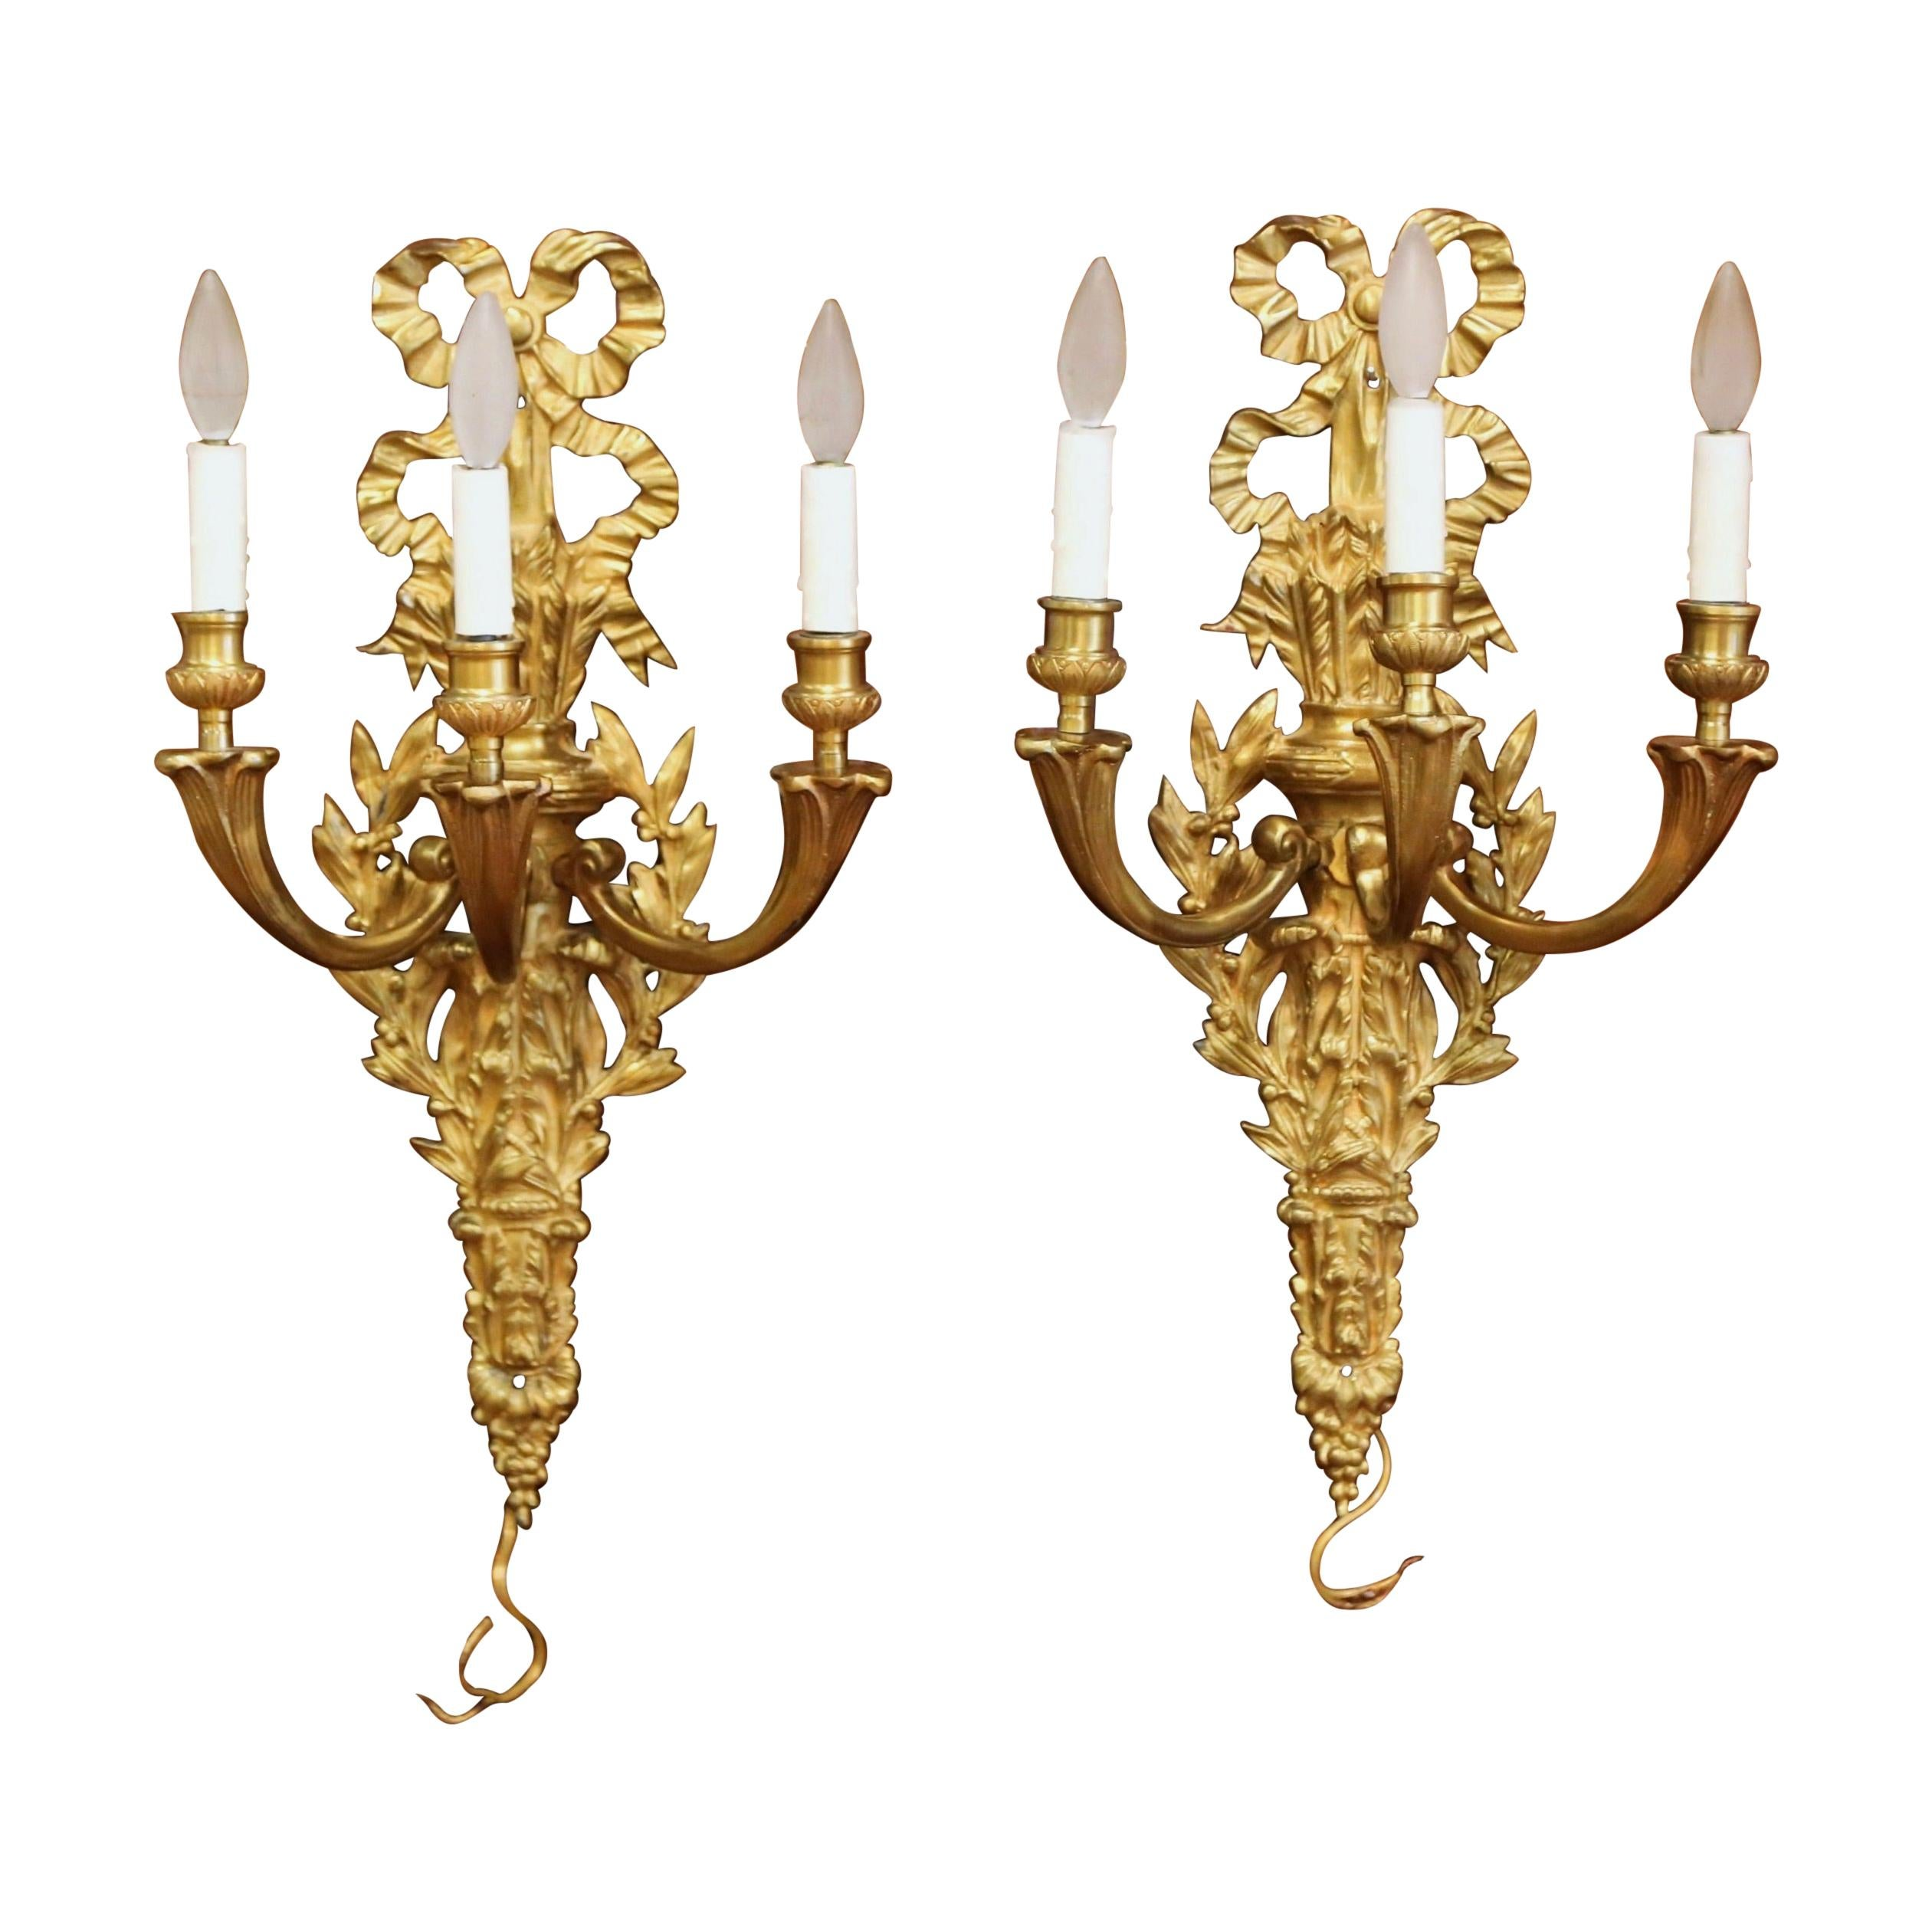 Pair of Mid-19th Century French Louis XVI Bronze Dore Three-Light Wall Sconces